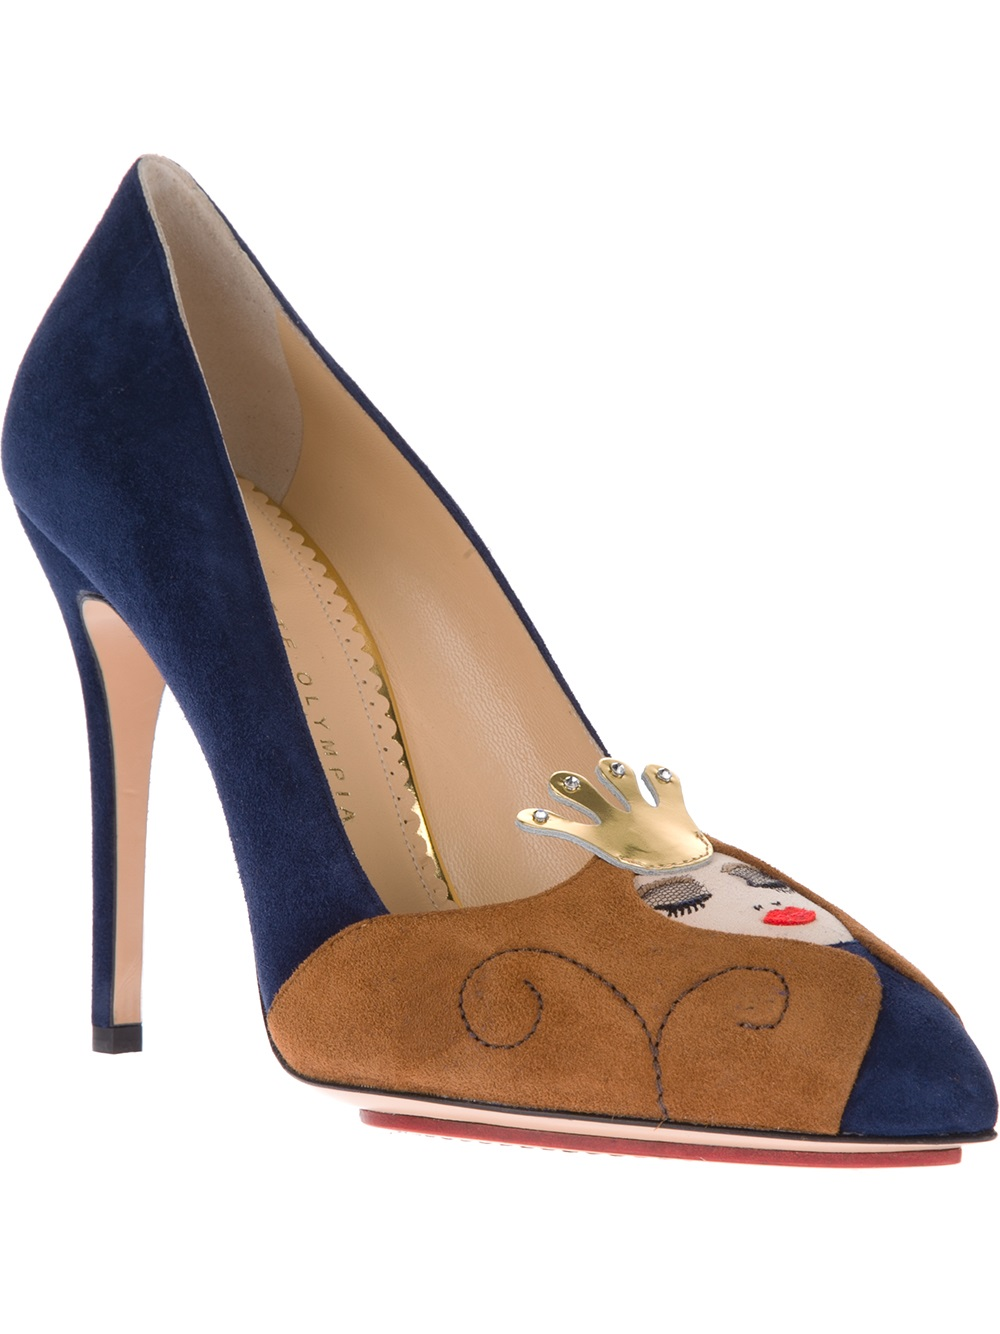 charlotte olympia sleeping beauty pump in brown blue lyst. Black Bedroom Furniture Sets. Home Design Ideas